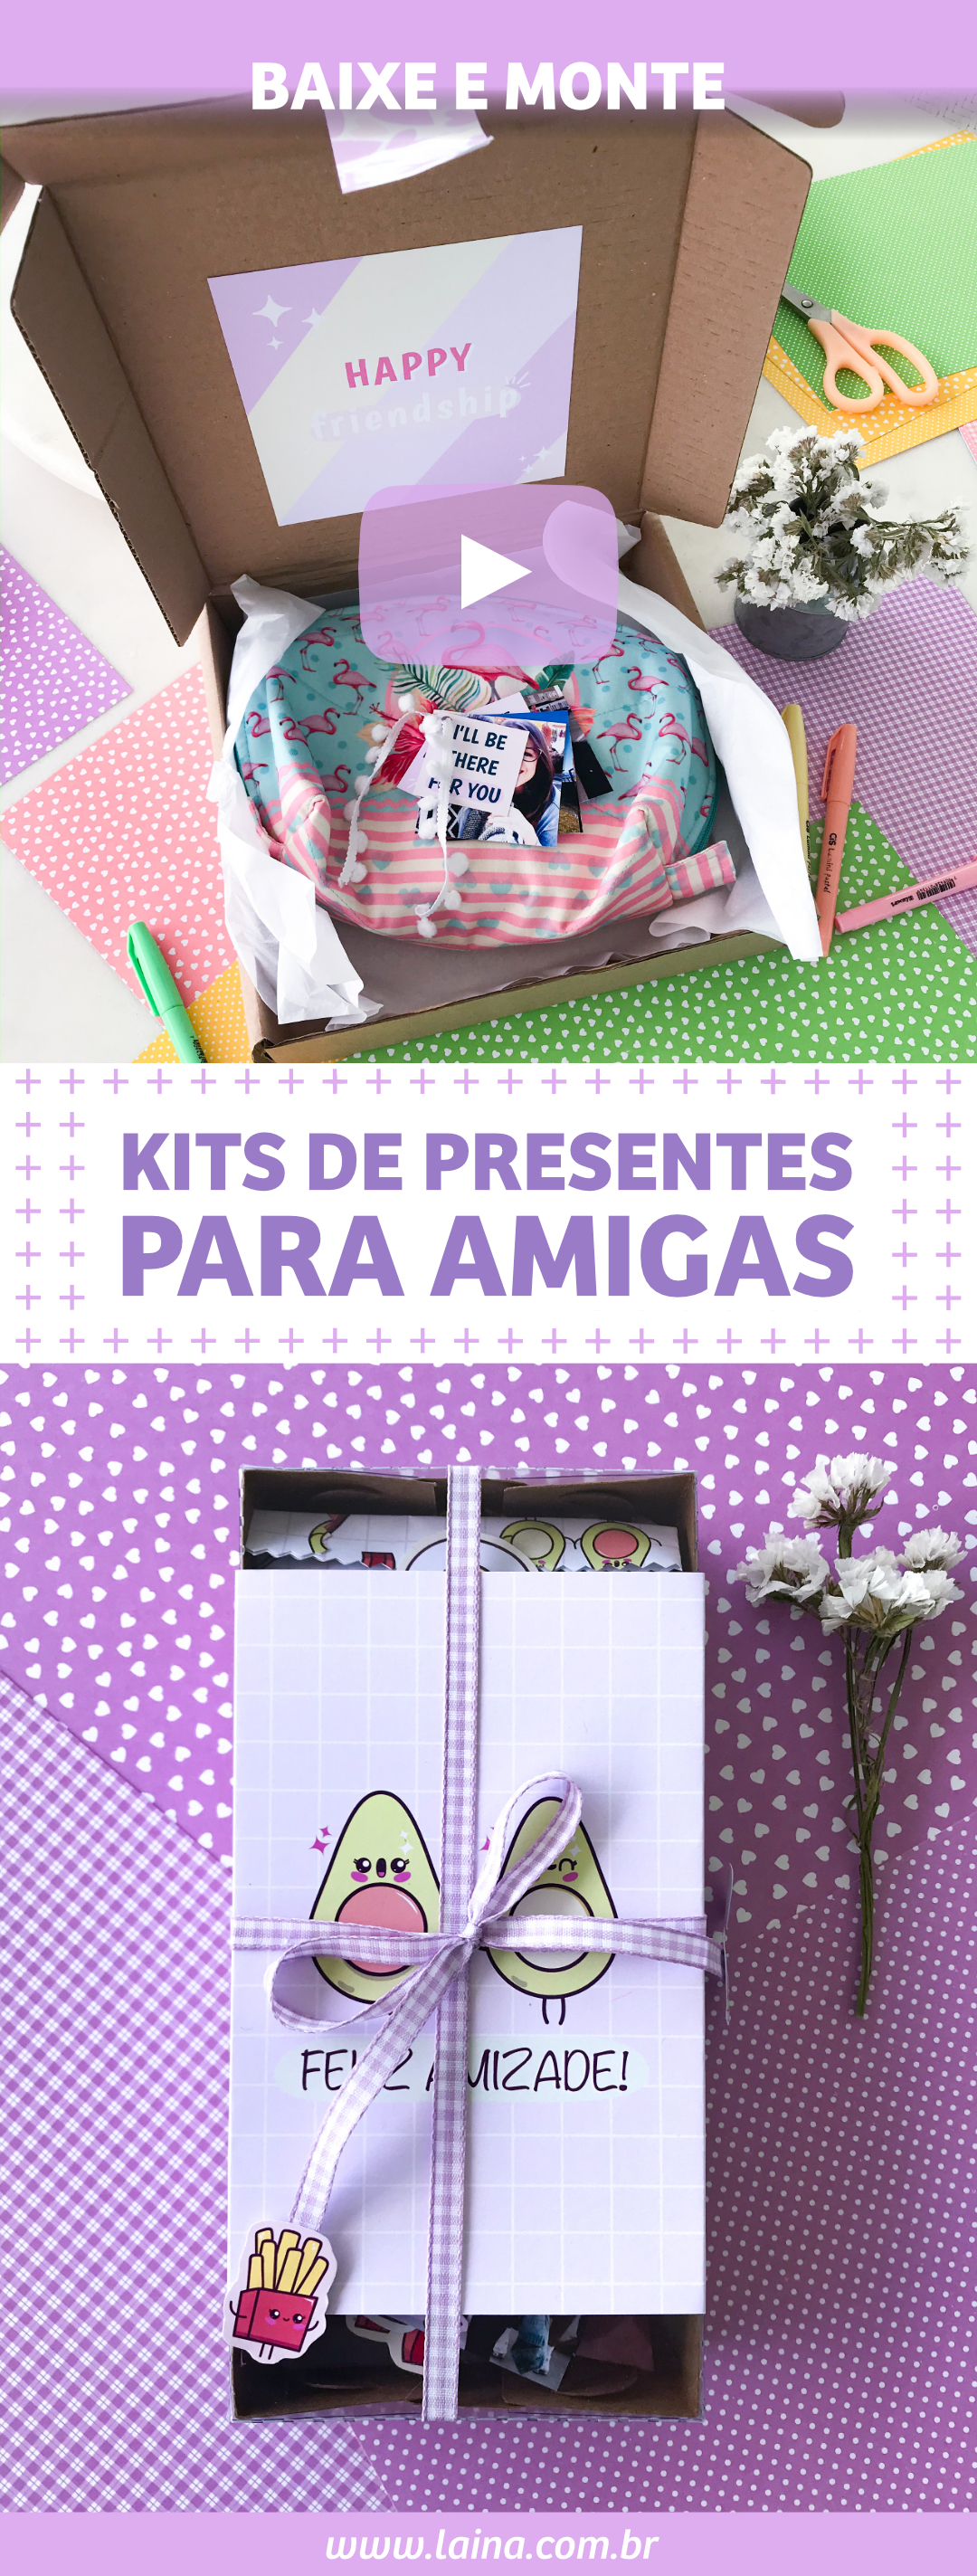 DIY Kits de Presentes Para as Amigas - Parceira de Comida e Série Friends